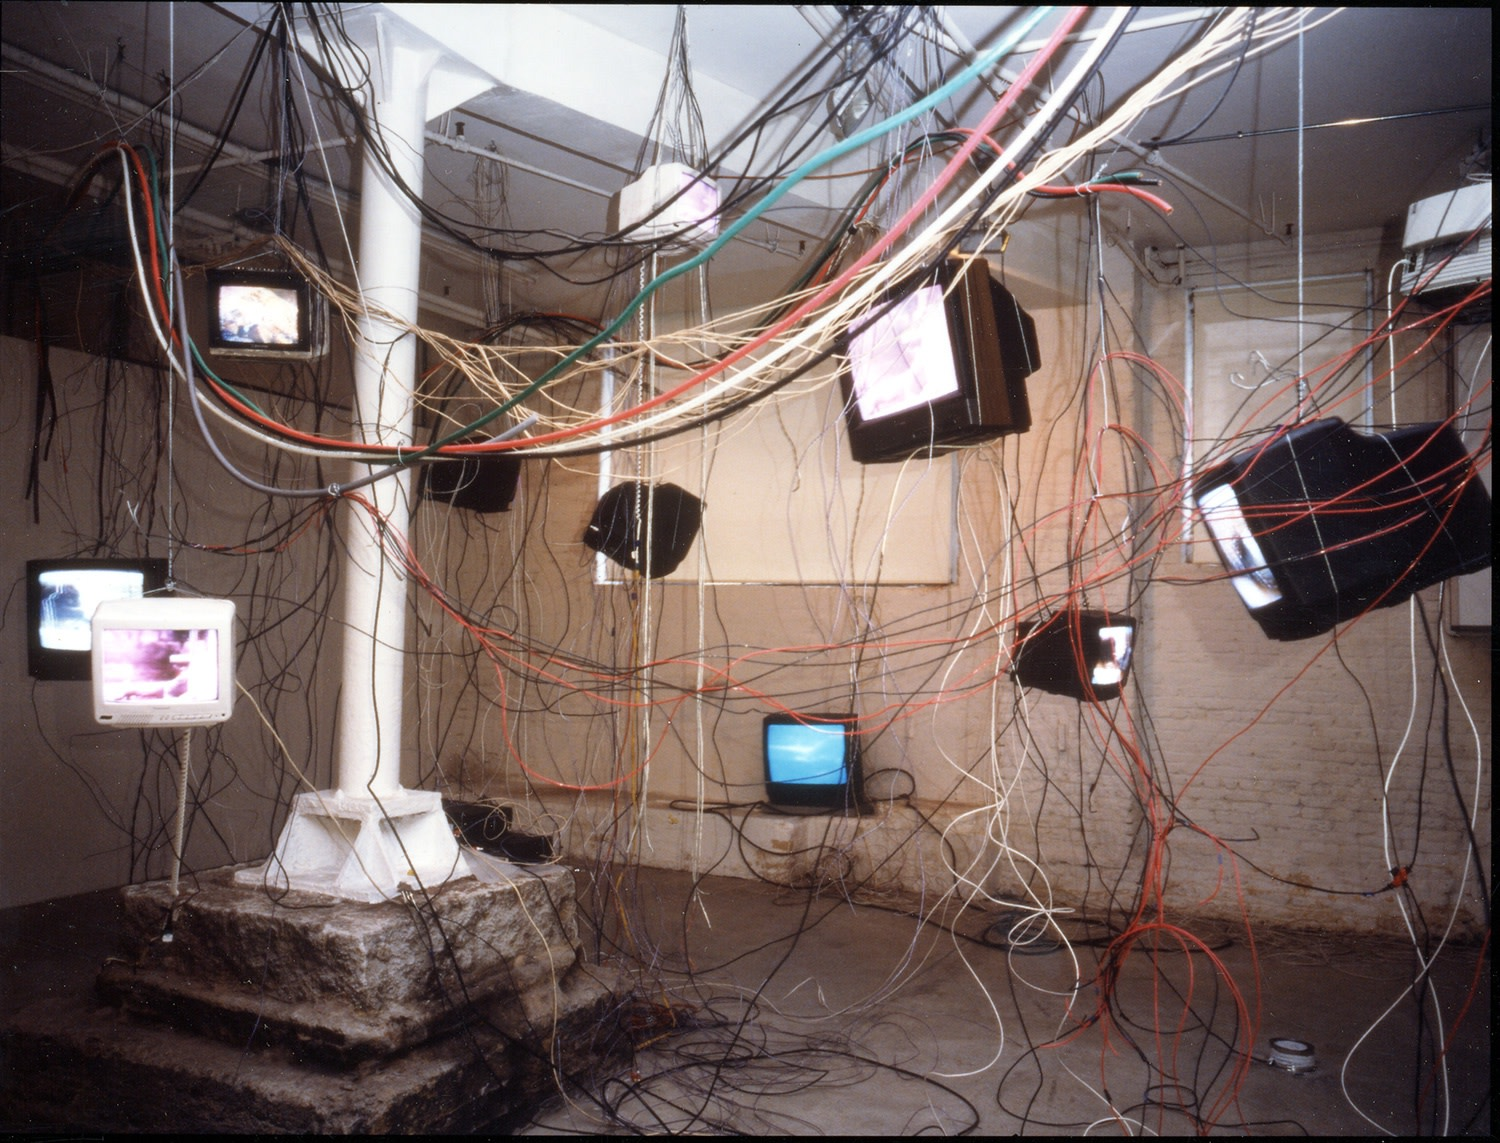 Carolee Schneemann More Wrong Things, 2001 Fourteen video monitors with video loops suspended from the ceiling within an extended tangle...